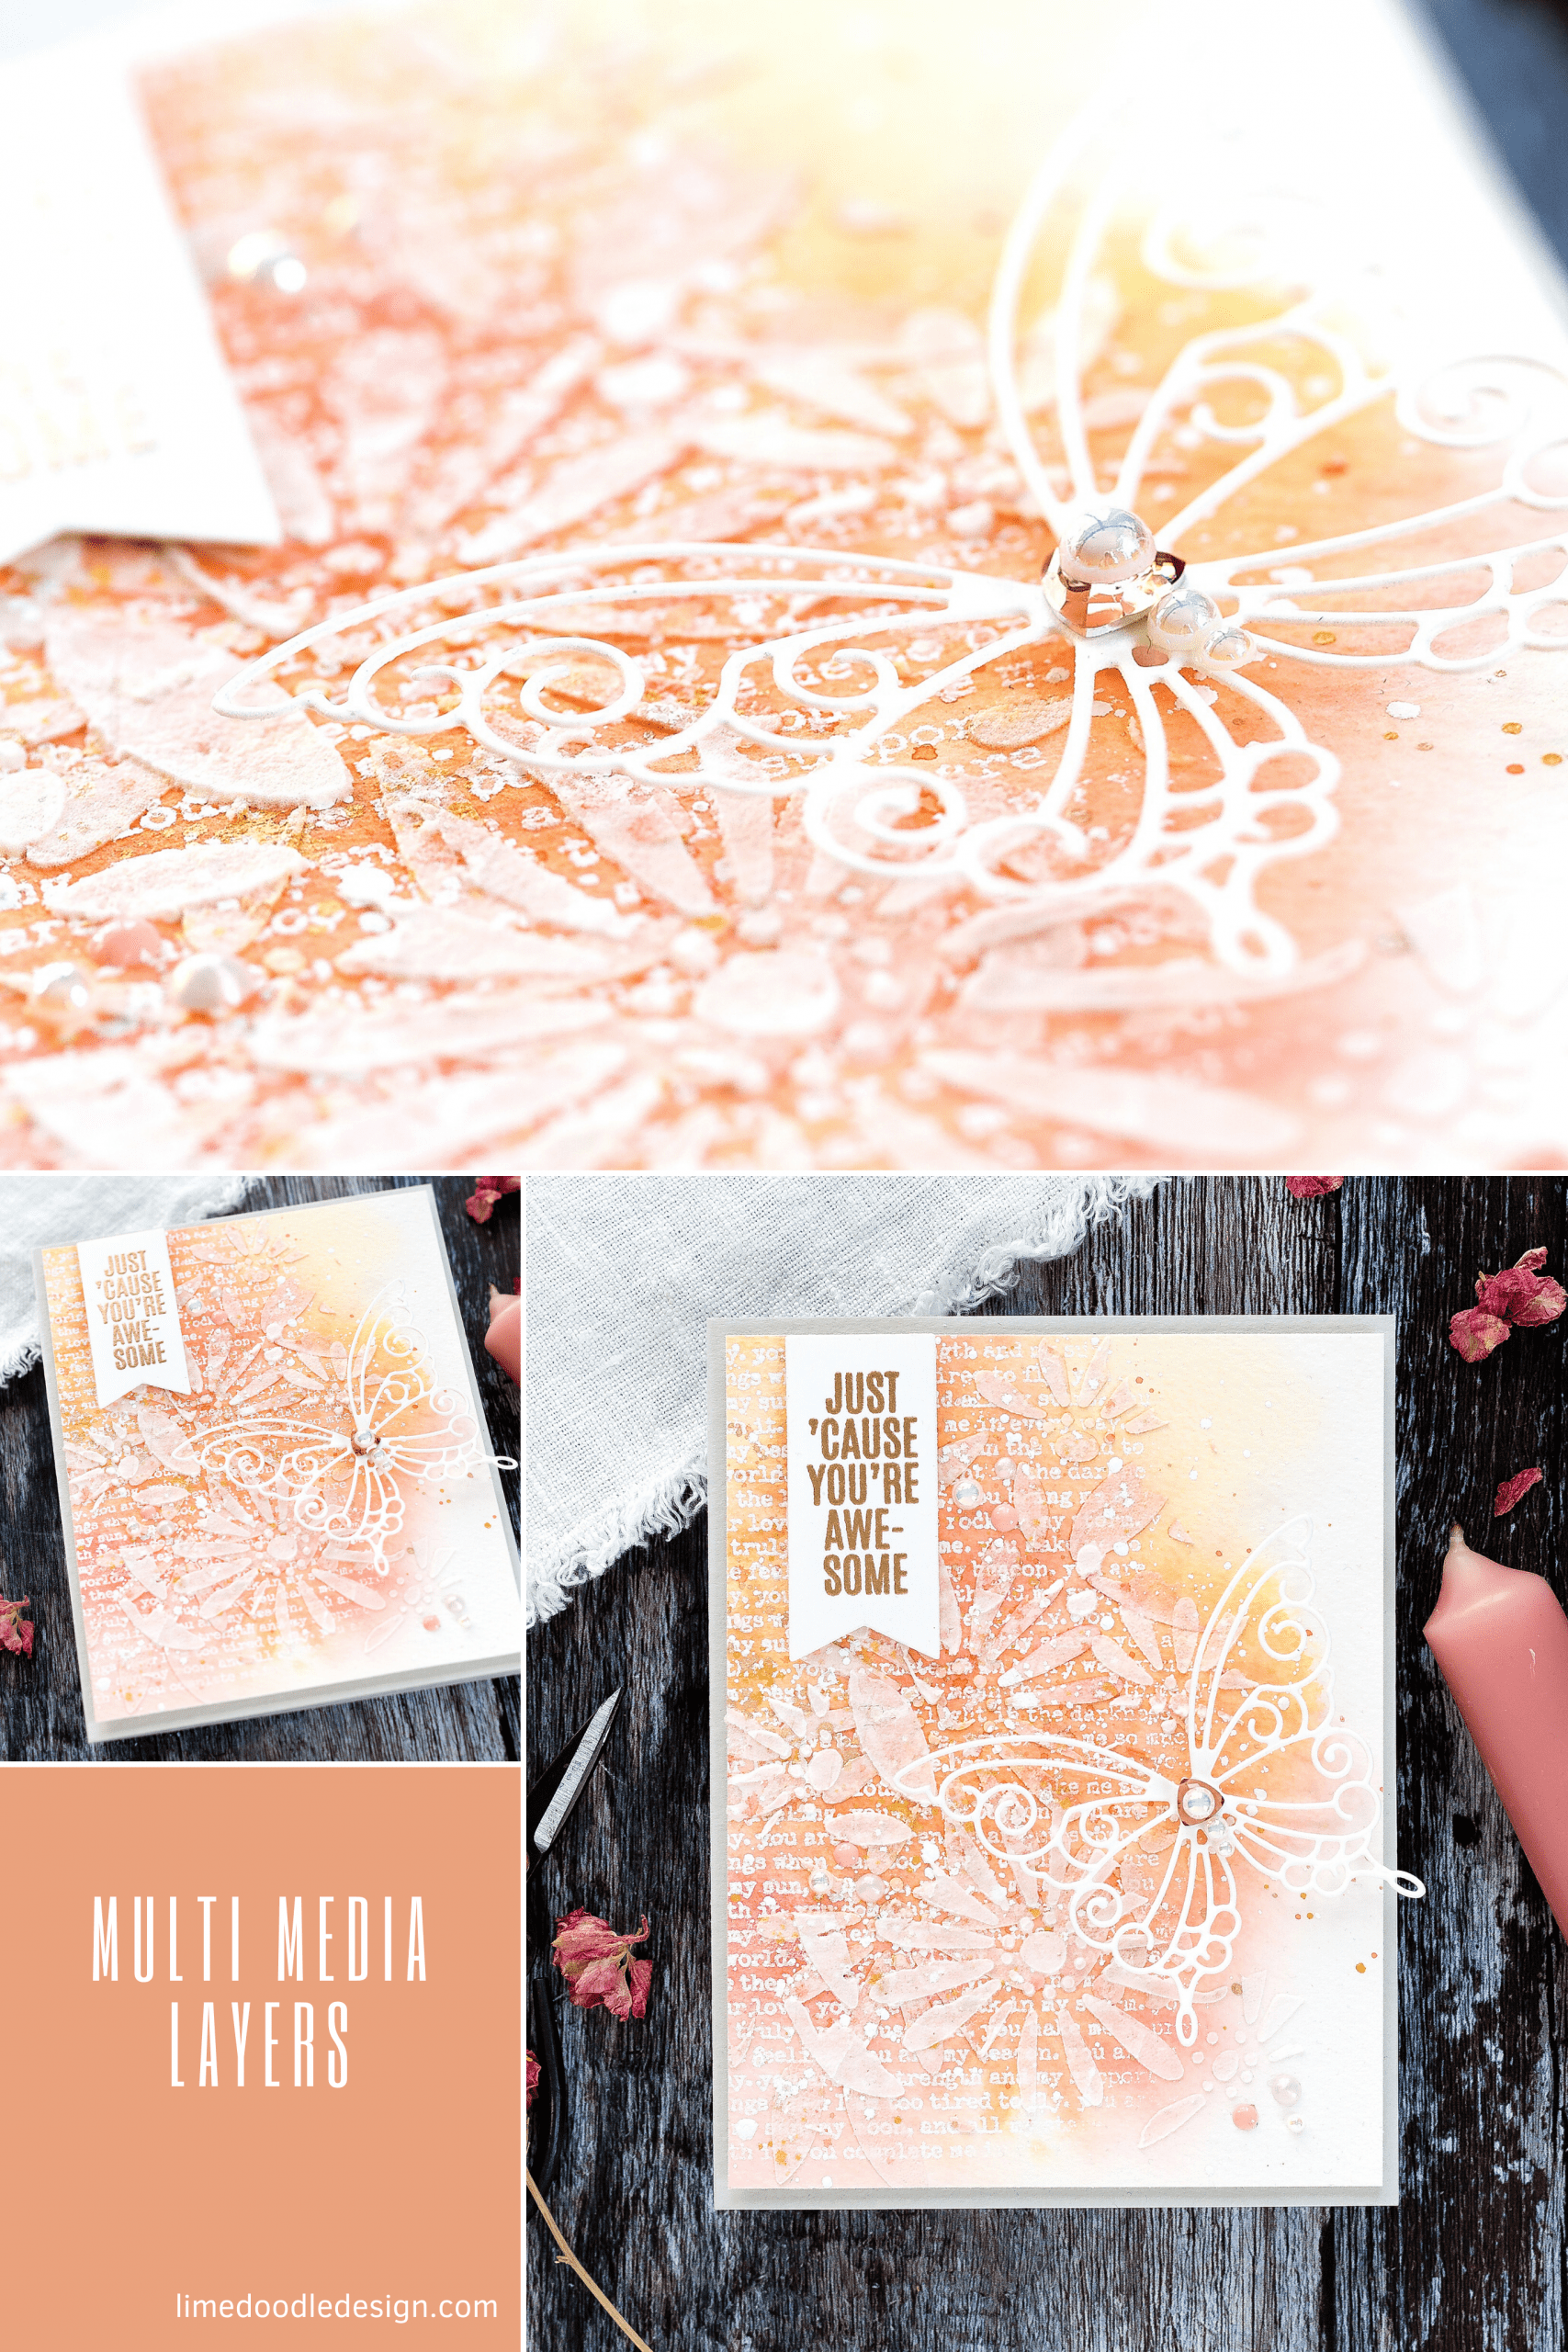 Mixed-media layers tutorial, handmade card by Debby Hughes using supplies from Simon Says Stamp #watercolor #homemade